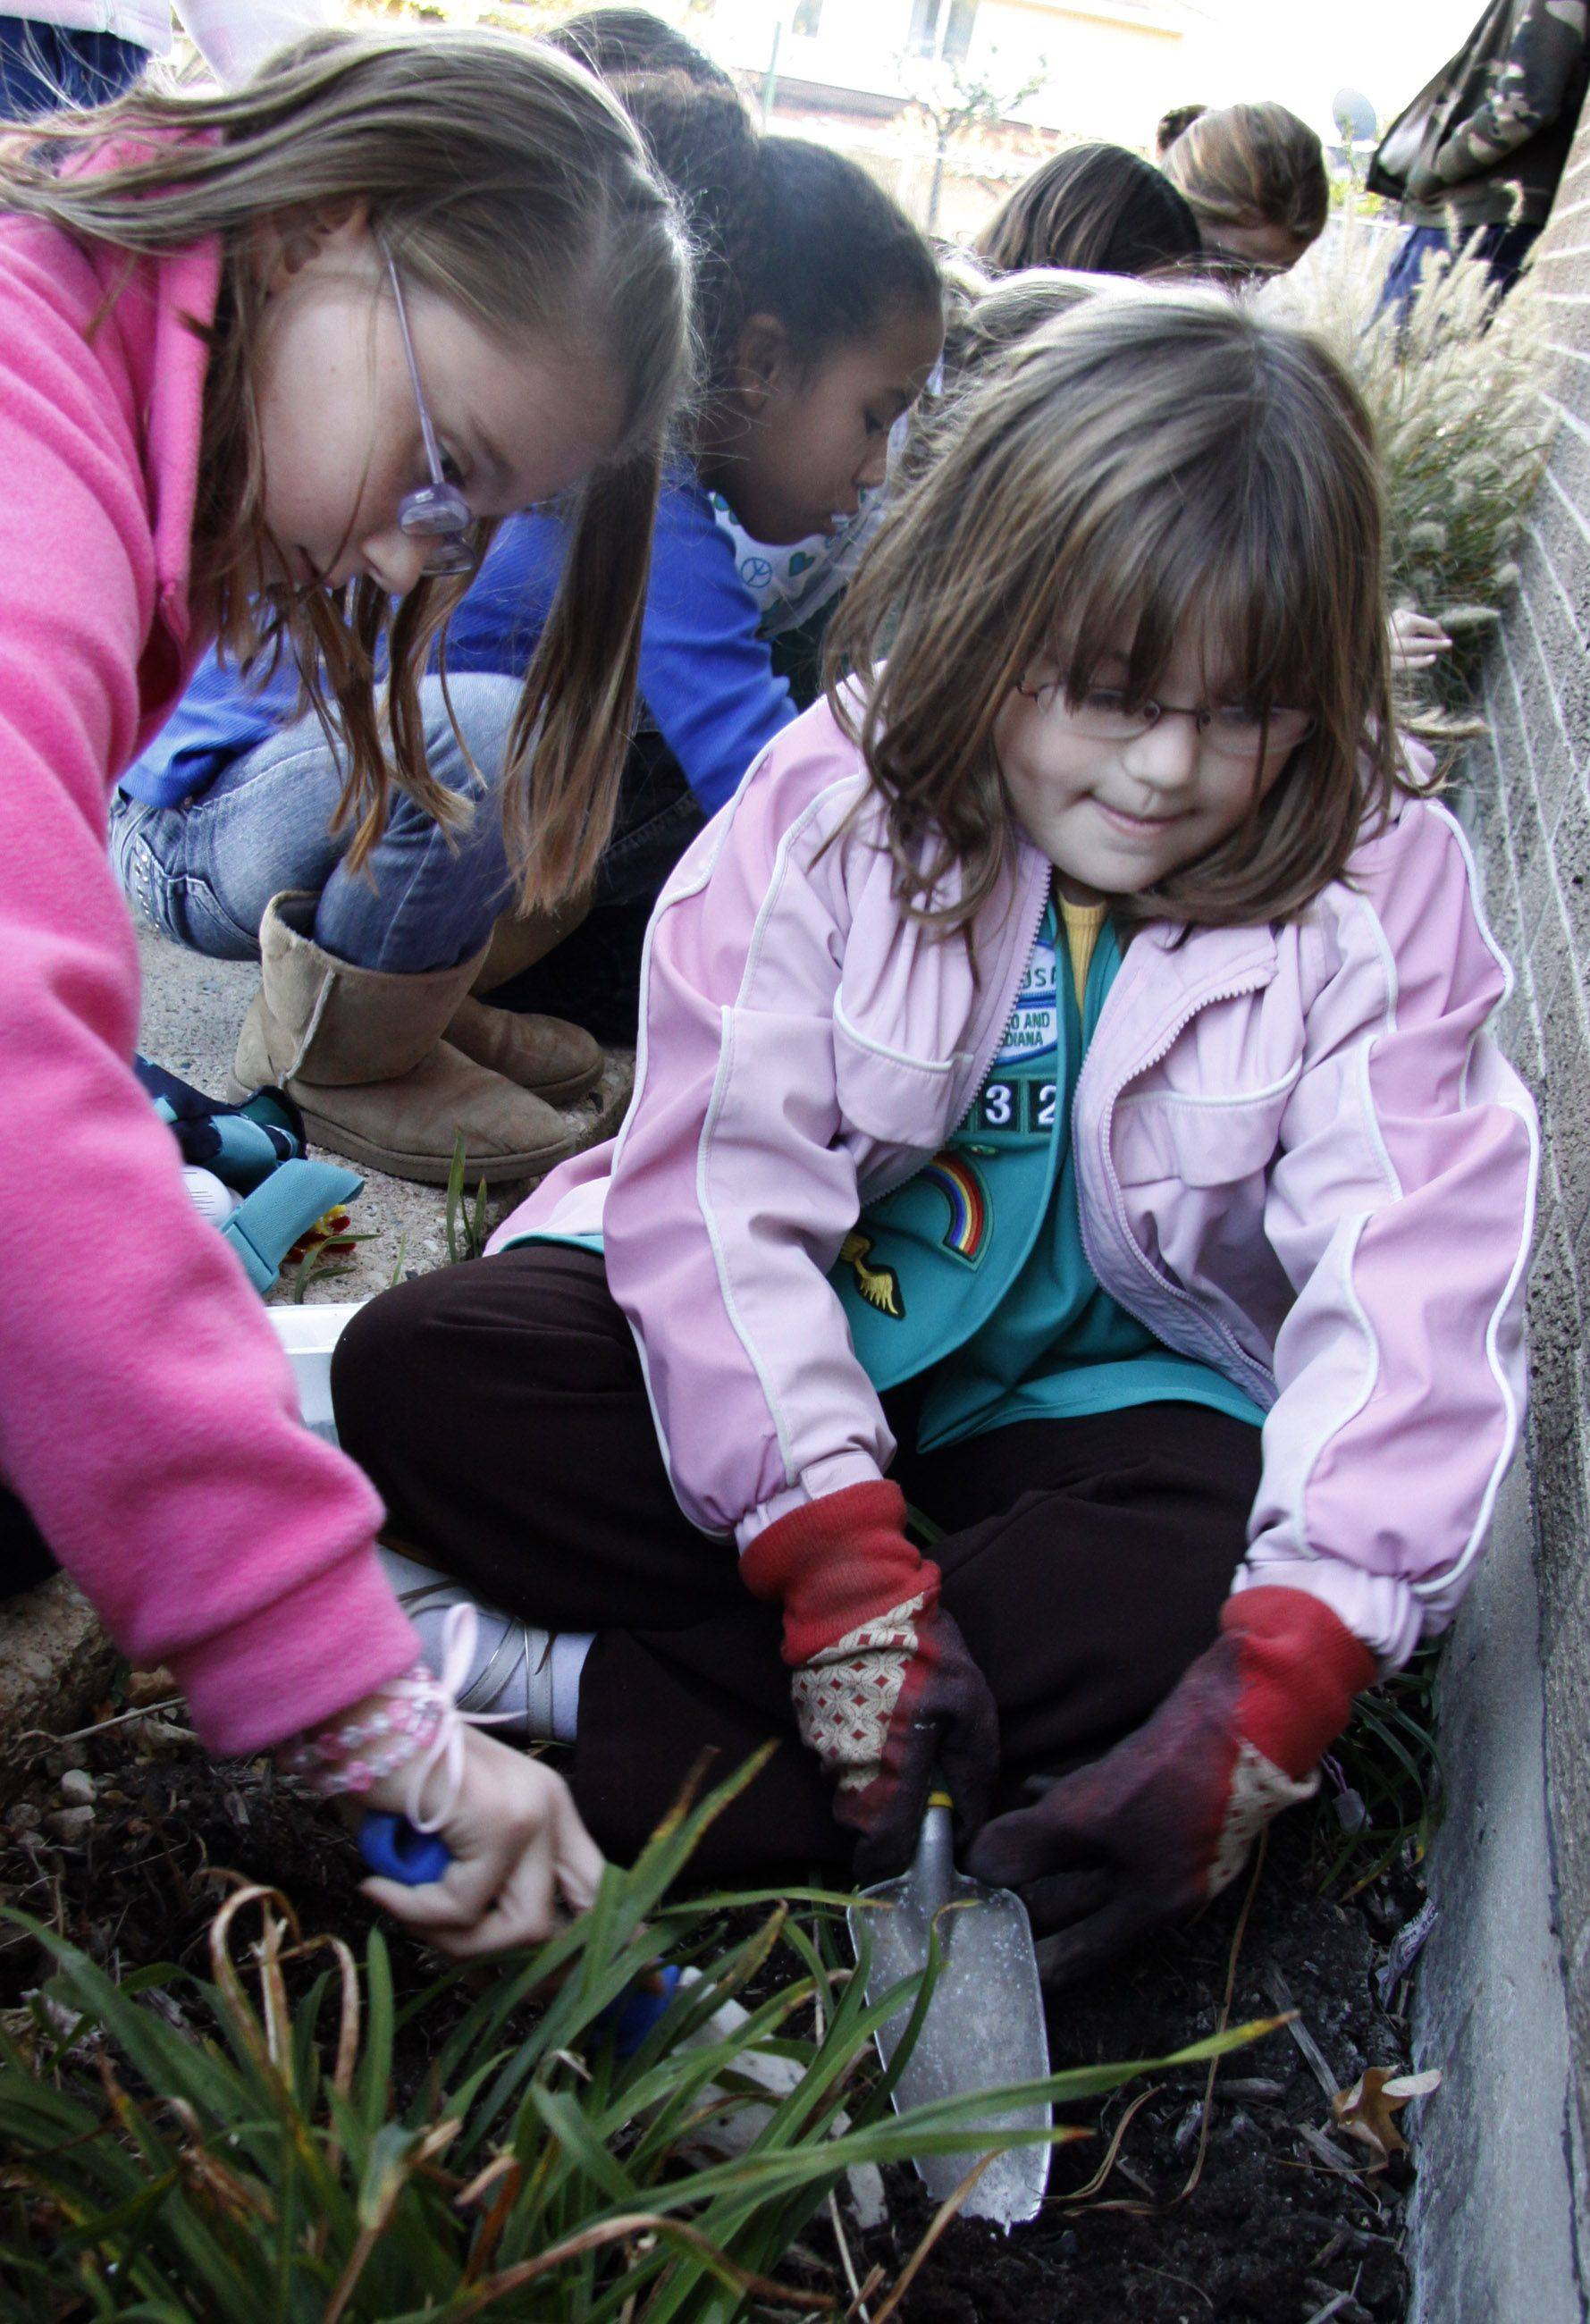 Riley Ellison, left, and Ella Walker of Girl Scout Troop 1332 from Springhill School in Roselle plant pink tulips Thursday in observance of Breast Cancer Awareness Month. The bulbs were planted in memory of Juliette Low, the founder of Girl Scouts, and to their third-grade teacher, Darlene Fraser, who passed away last year from cancer. Both girls are nine.